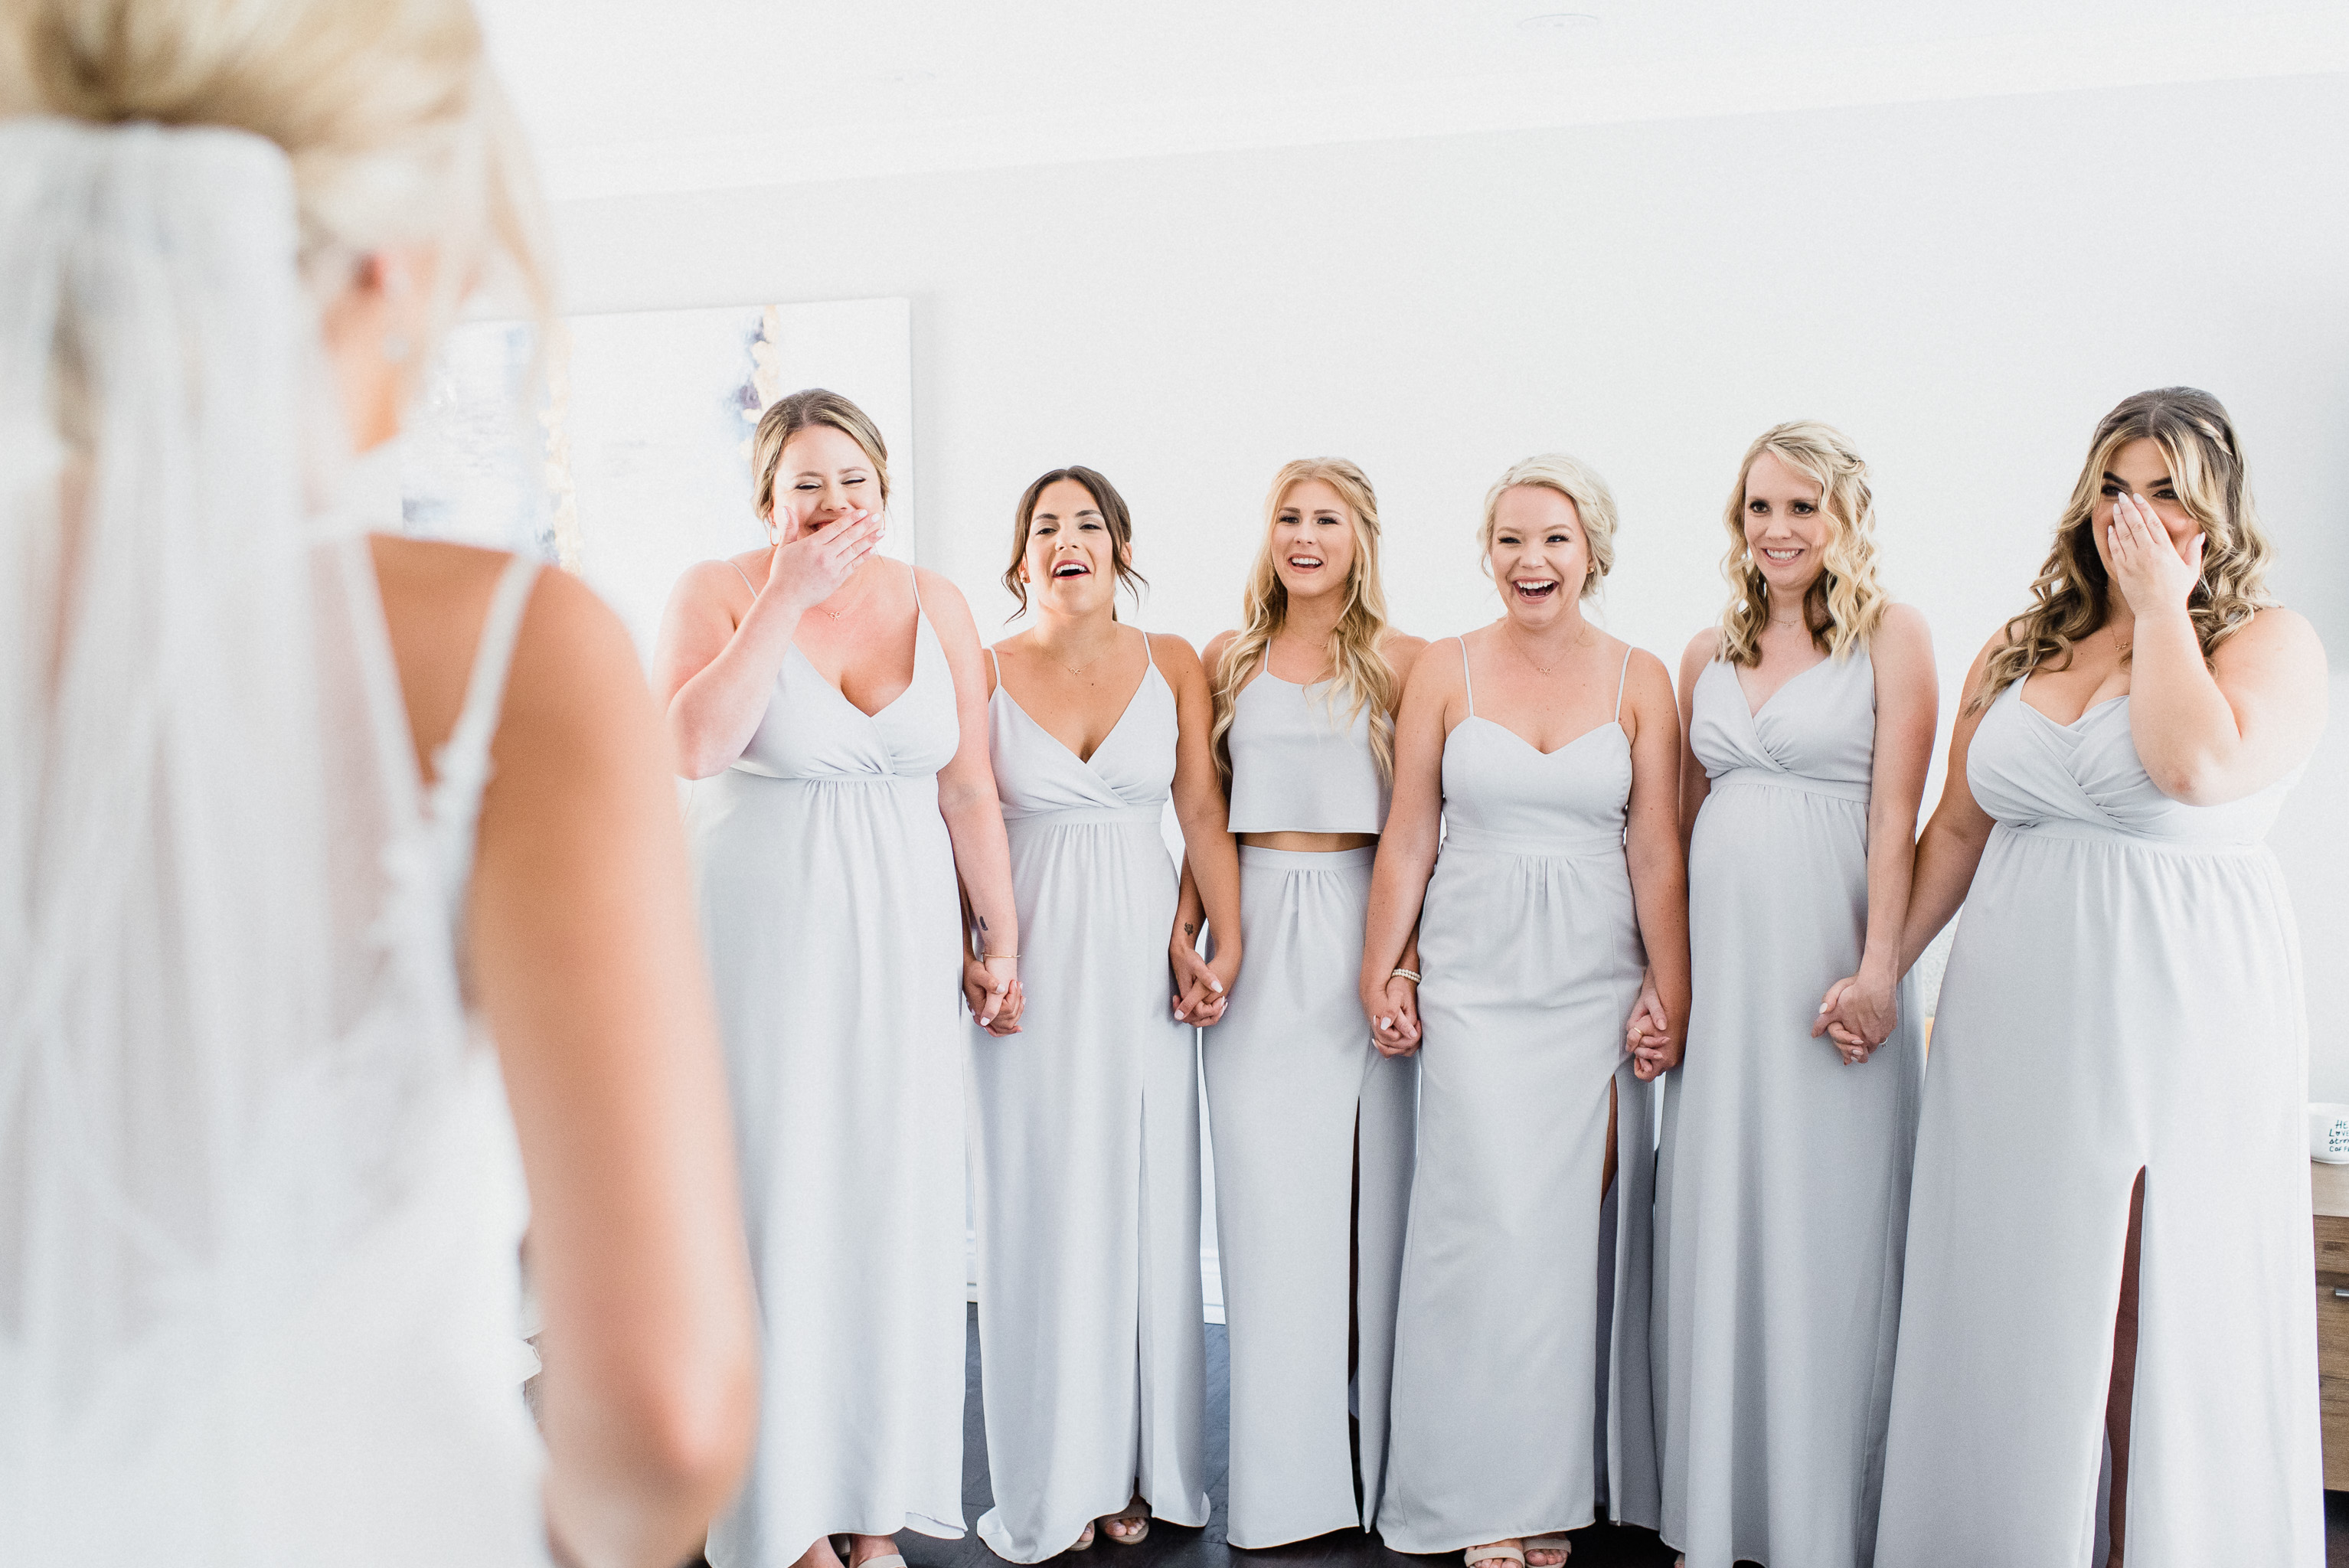 Bride's first look with bridesmaids by Jenn Kavanagh Photography